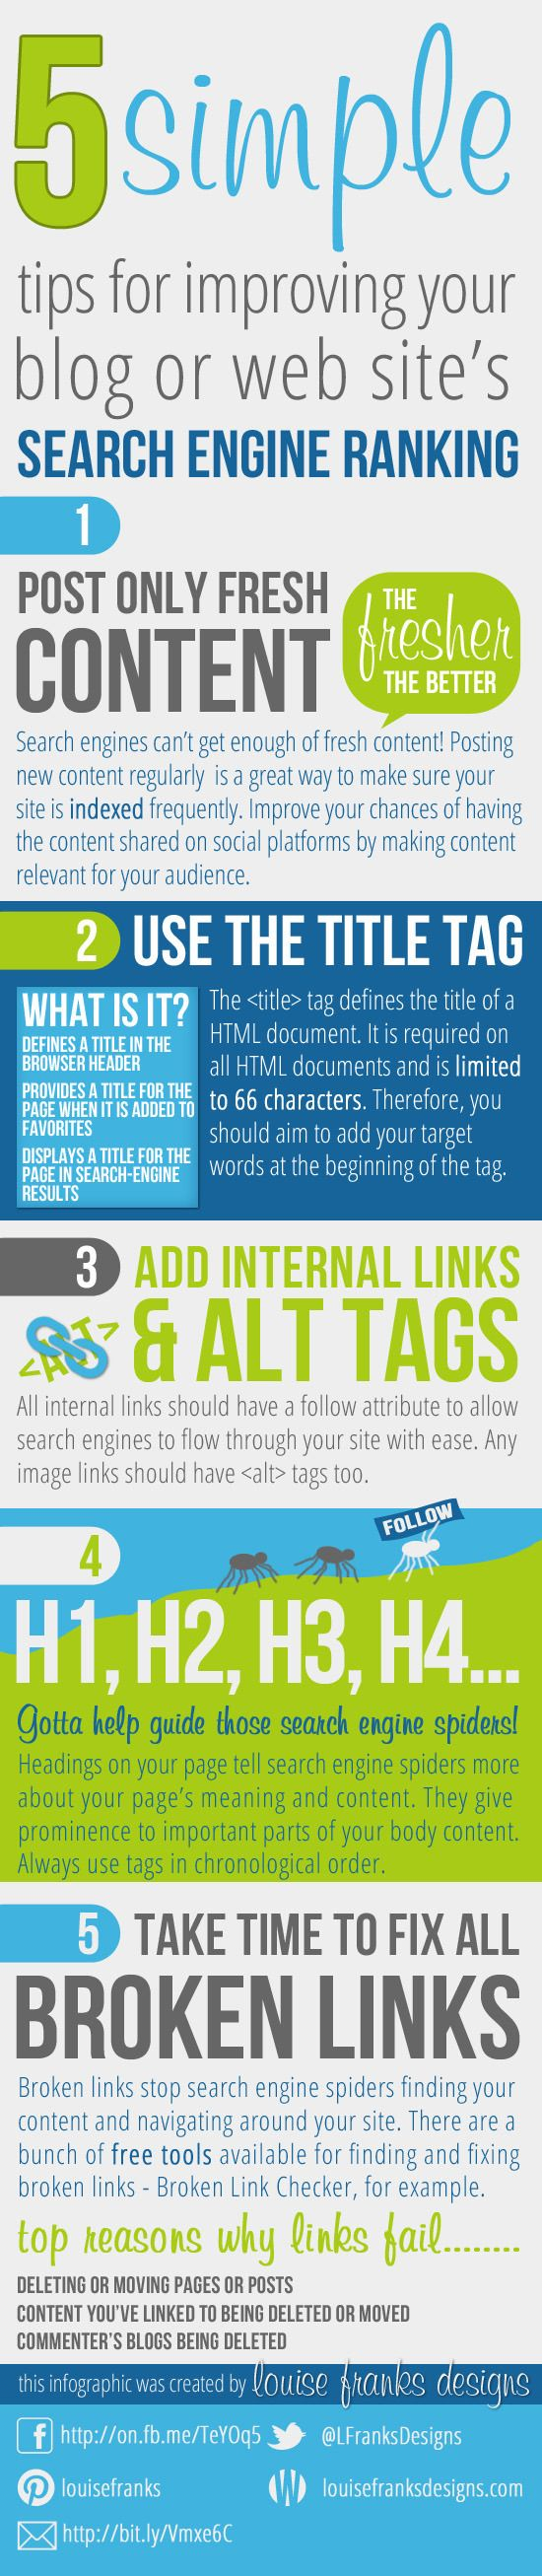 5 simple tips for improving your blog or web site's #infografia #infographic #seo | Propel Marketing